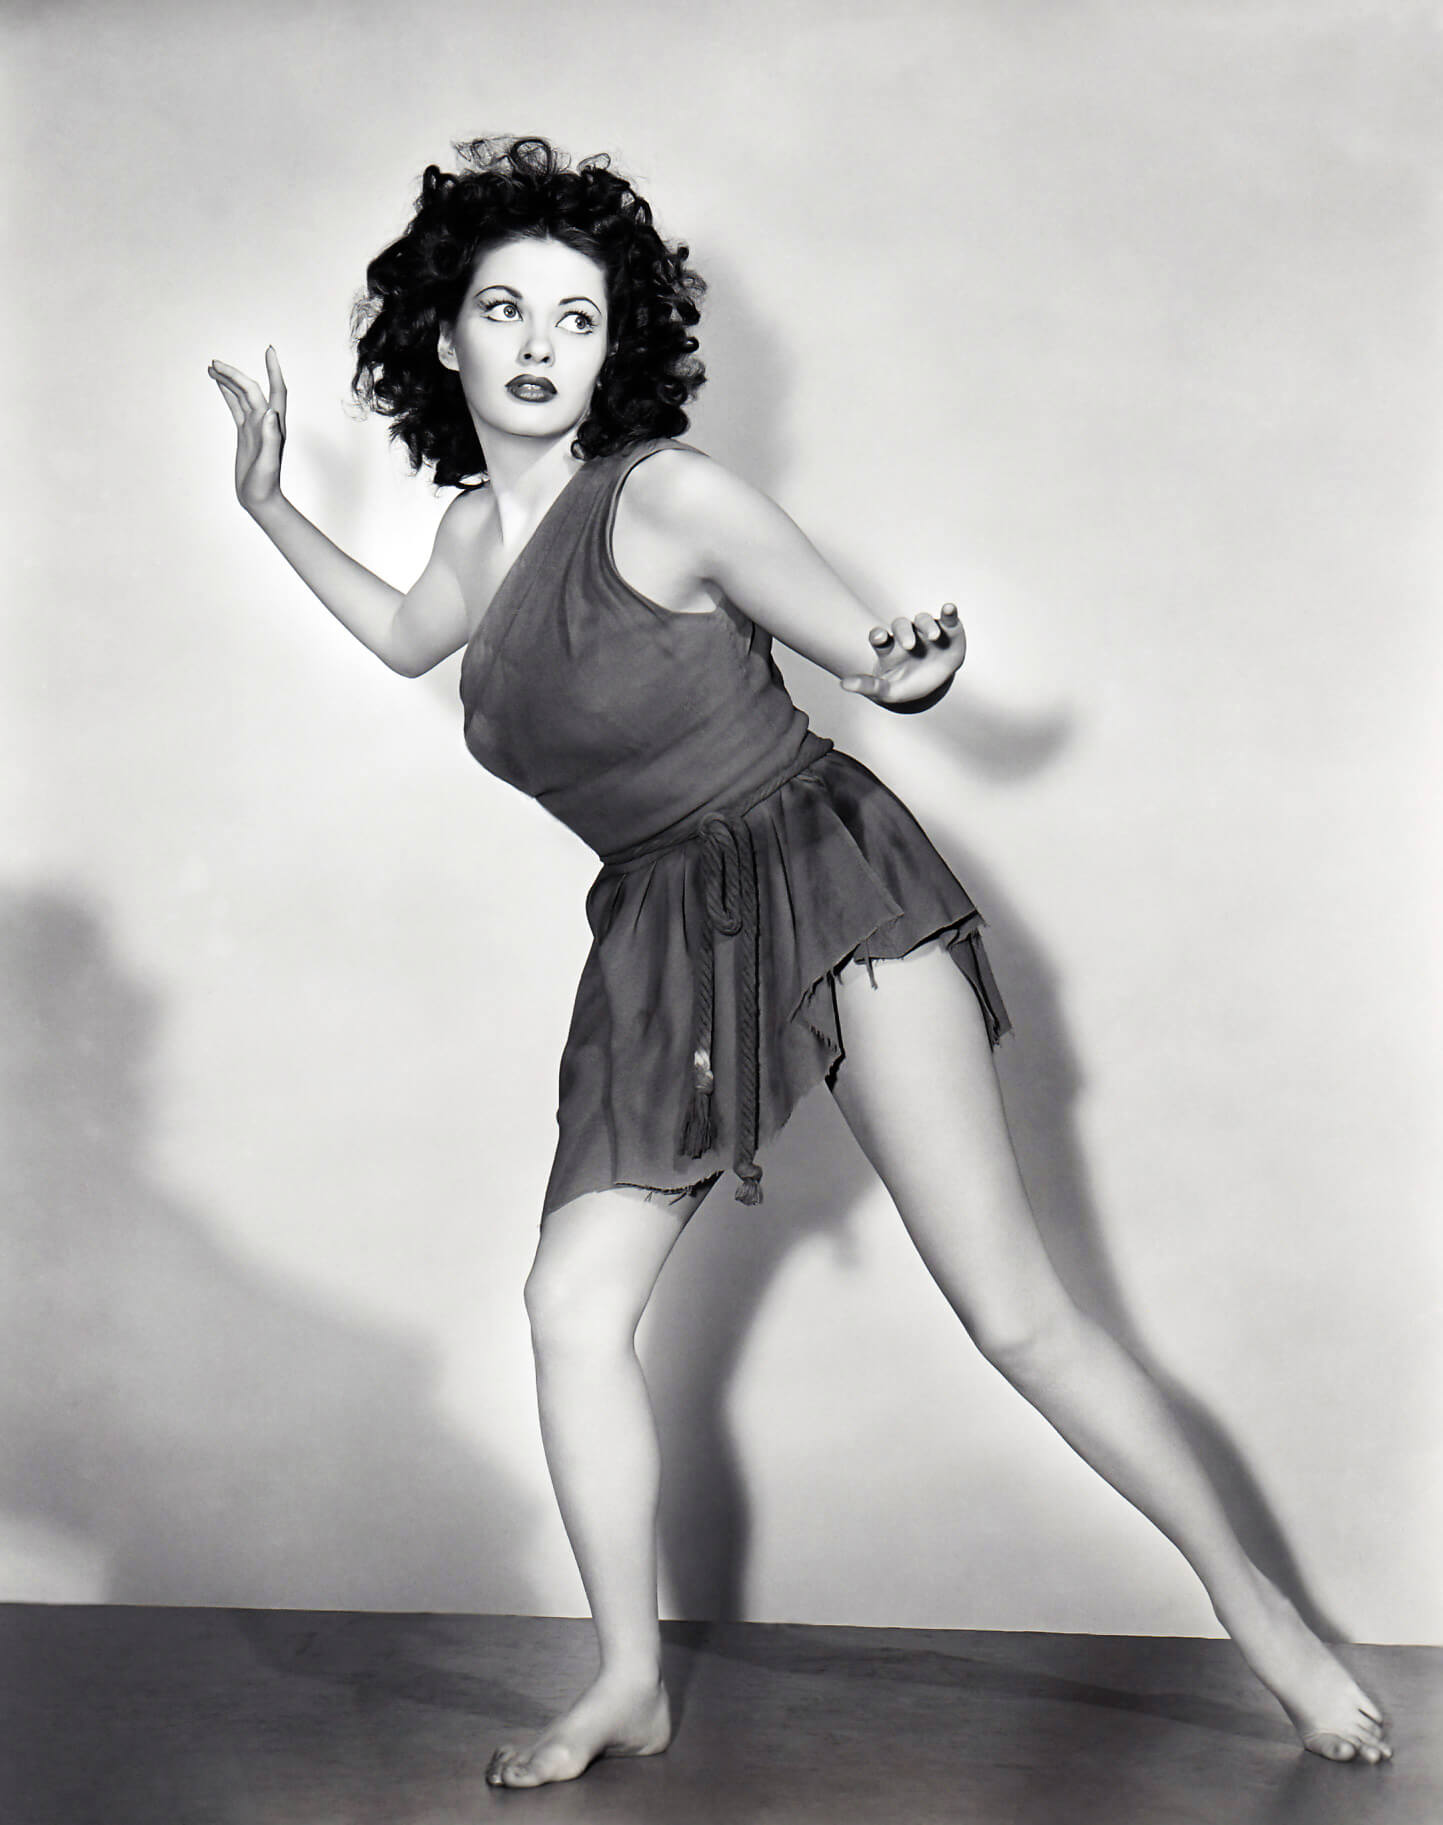 49 Hot Pictures Of Yvonne De Carlo That Will Make You